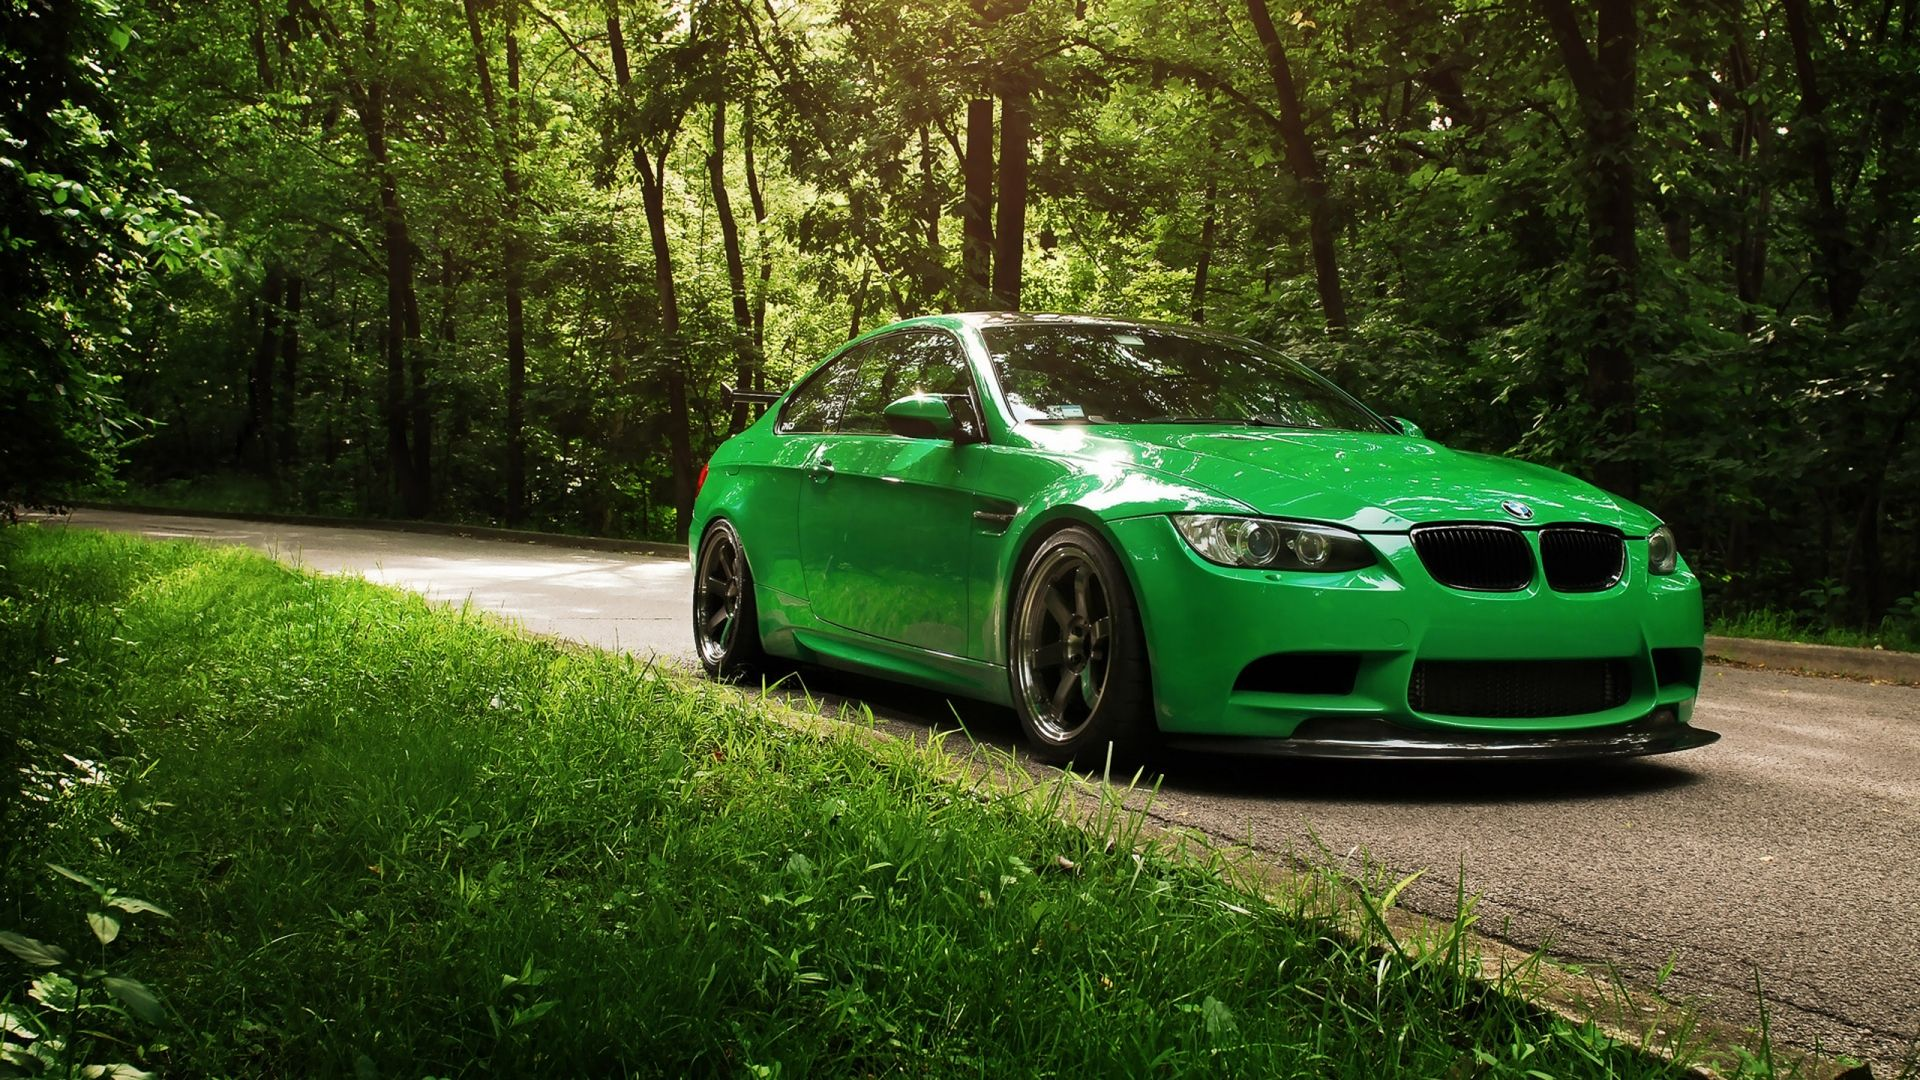 Go Green Bmw 1080p Hd Wallpaper Nature Bmw Car Wallpapers